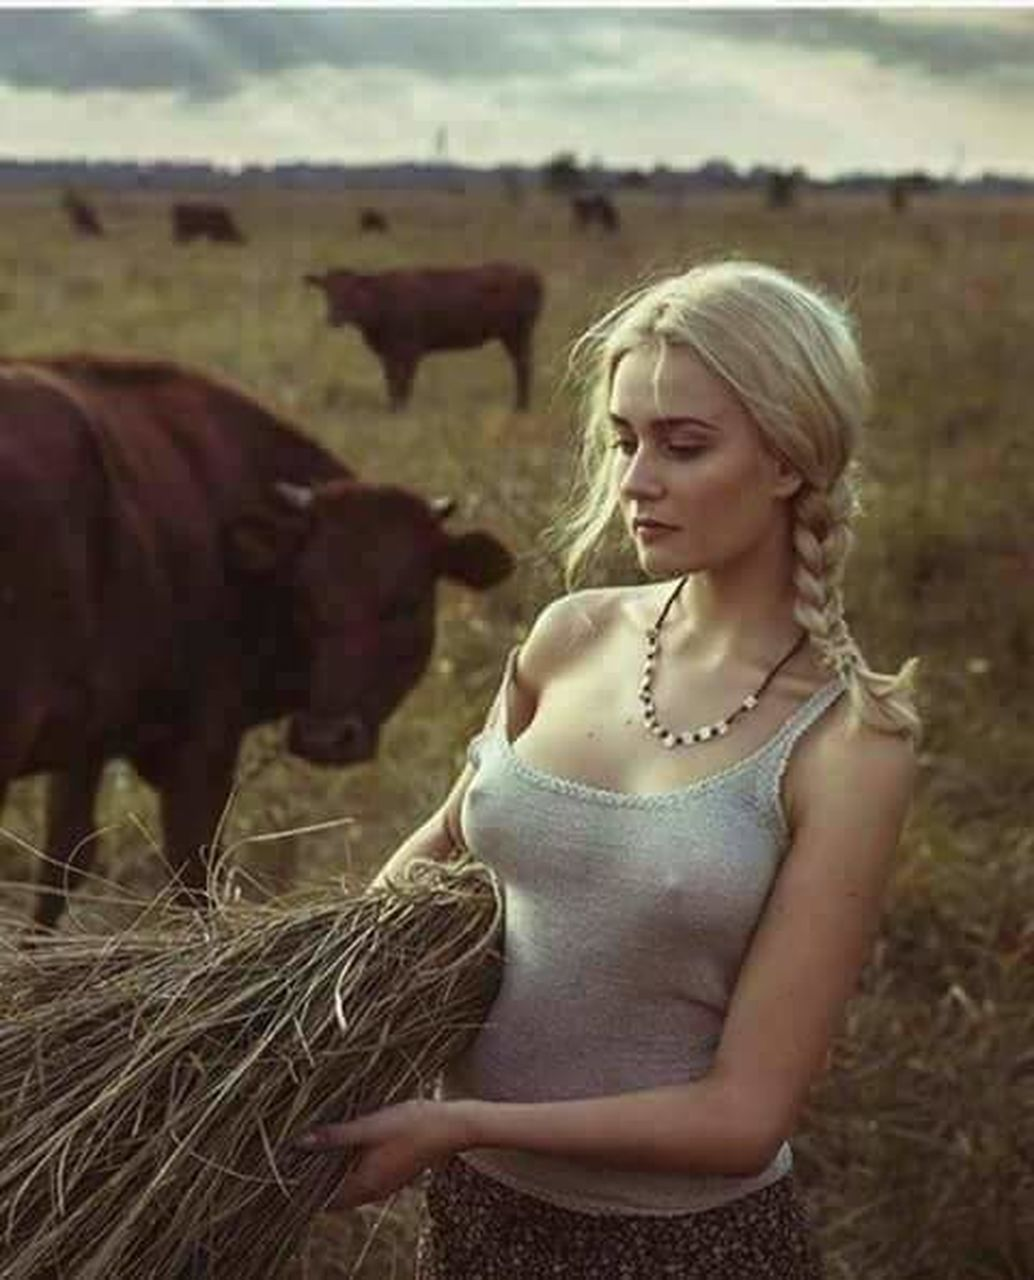 livestock, blond hair, cow, domestic animals, agriculture, field, cattle, hay, one person, rural scene, adult, grass, outdoors, standing, animal themes, young adult, mammal, beauty, people, only women, day, adults only, one young woman only